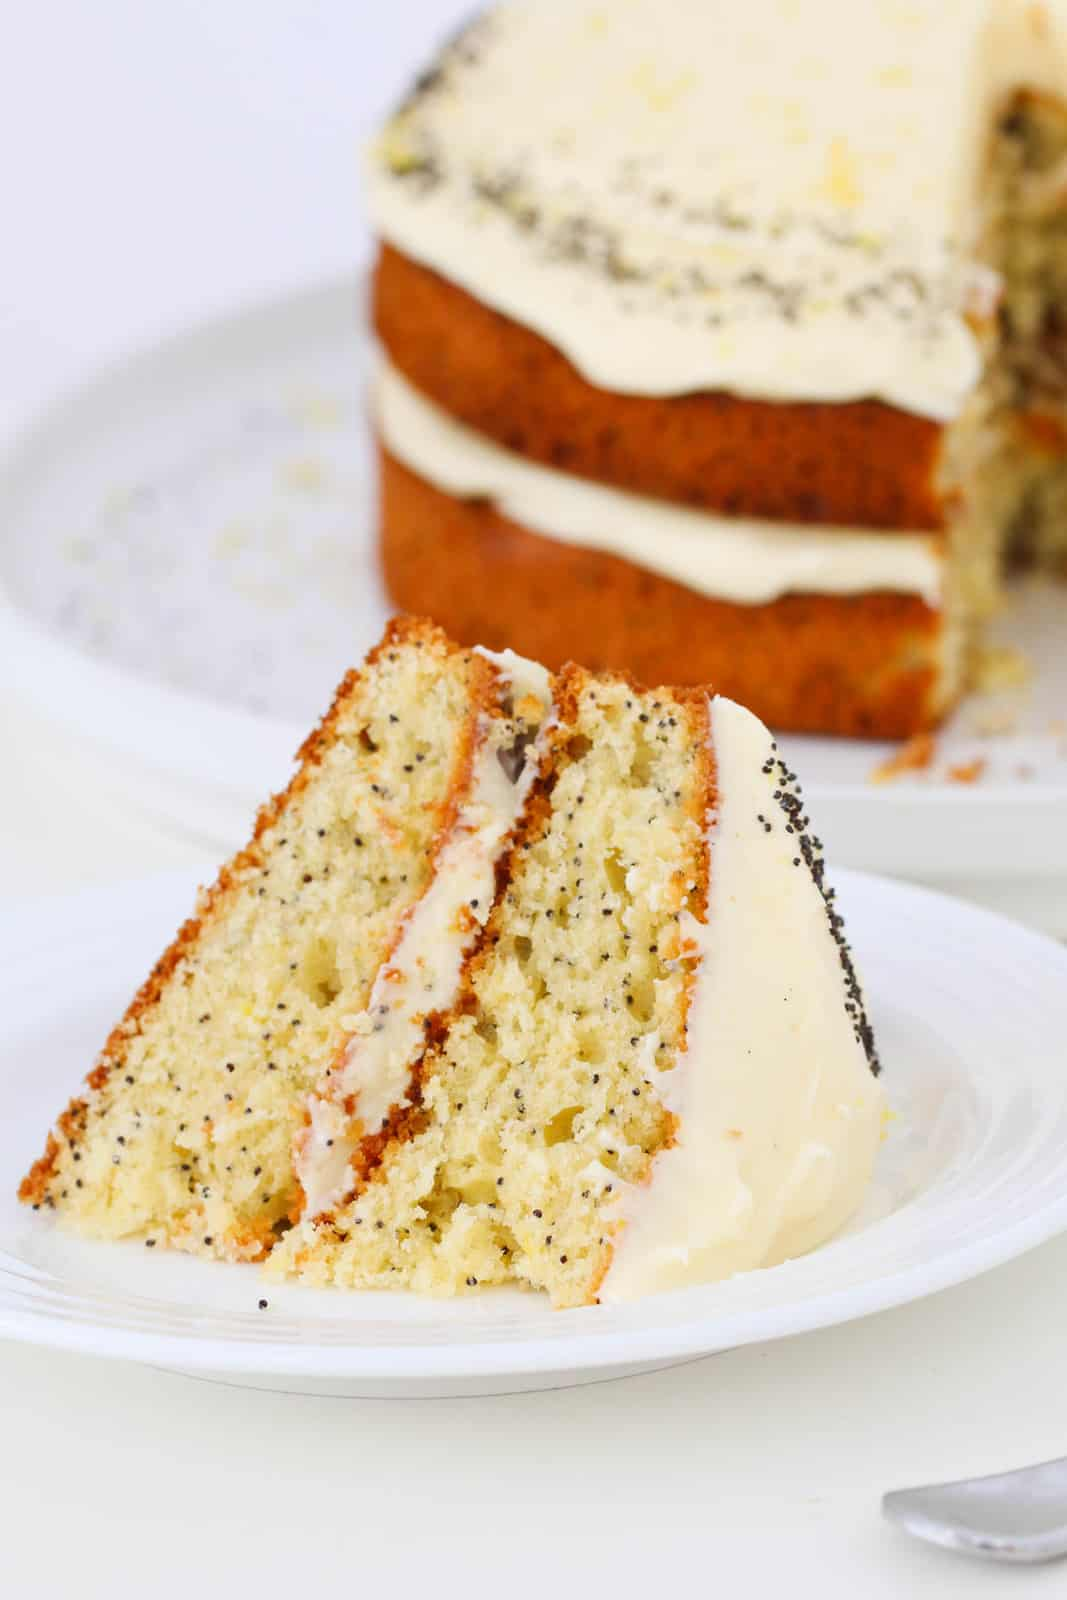 A slice of double layered lemon cake with poppy seeds and cream cheese frosting.